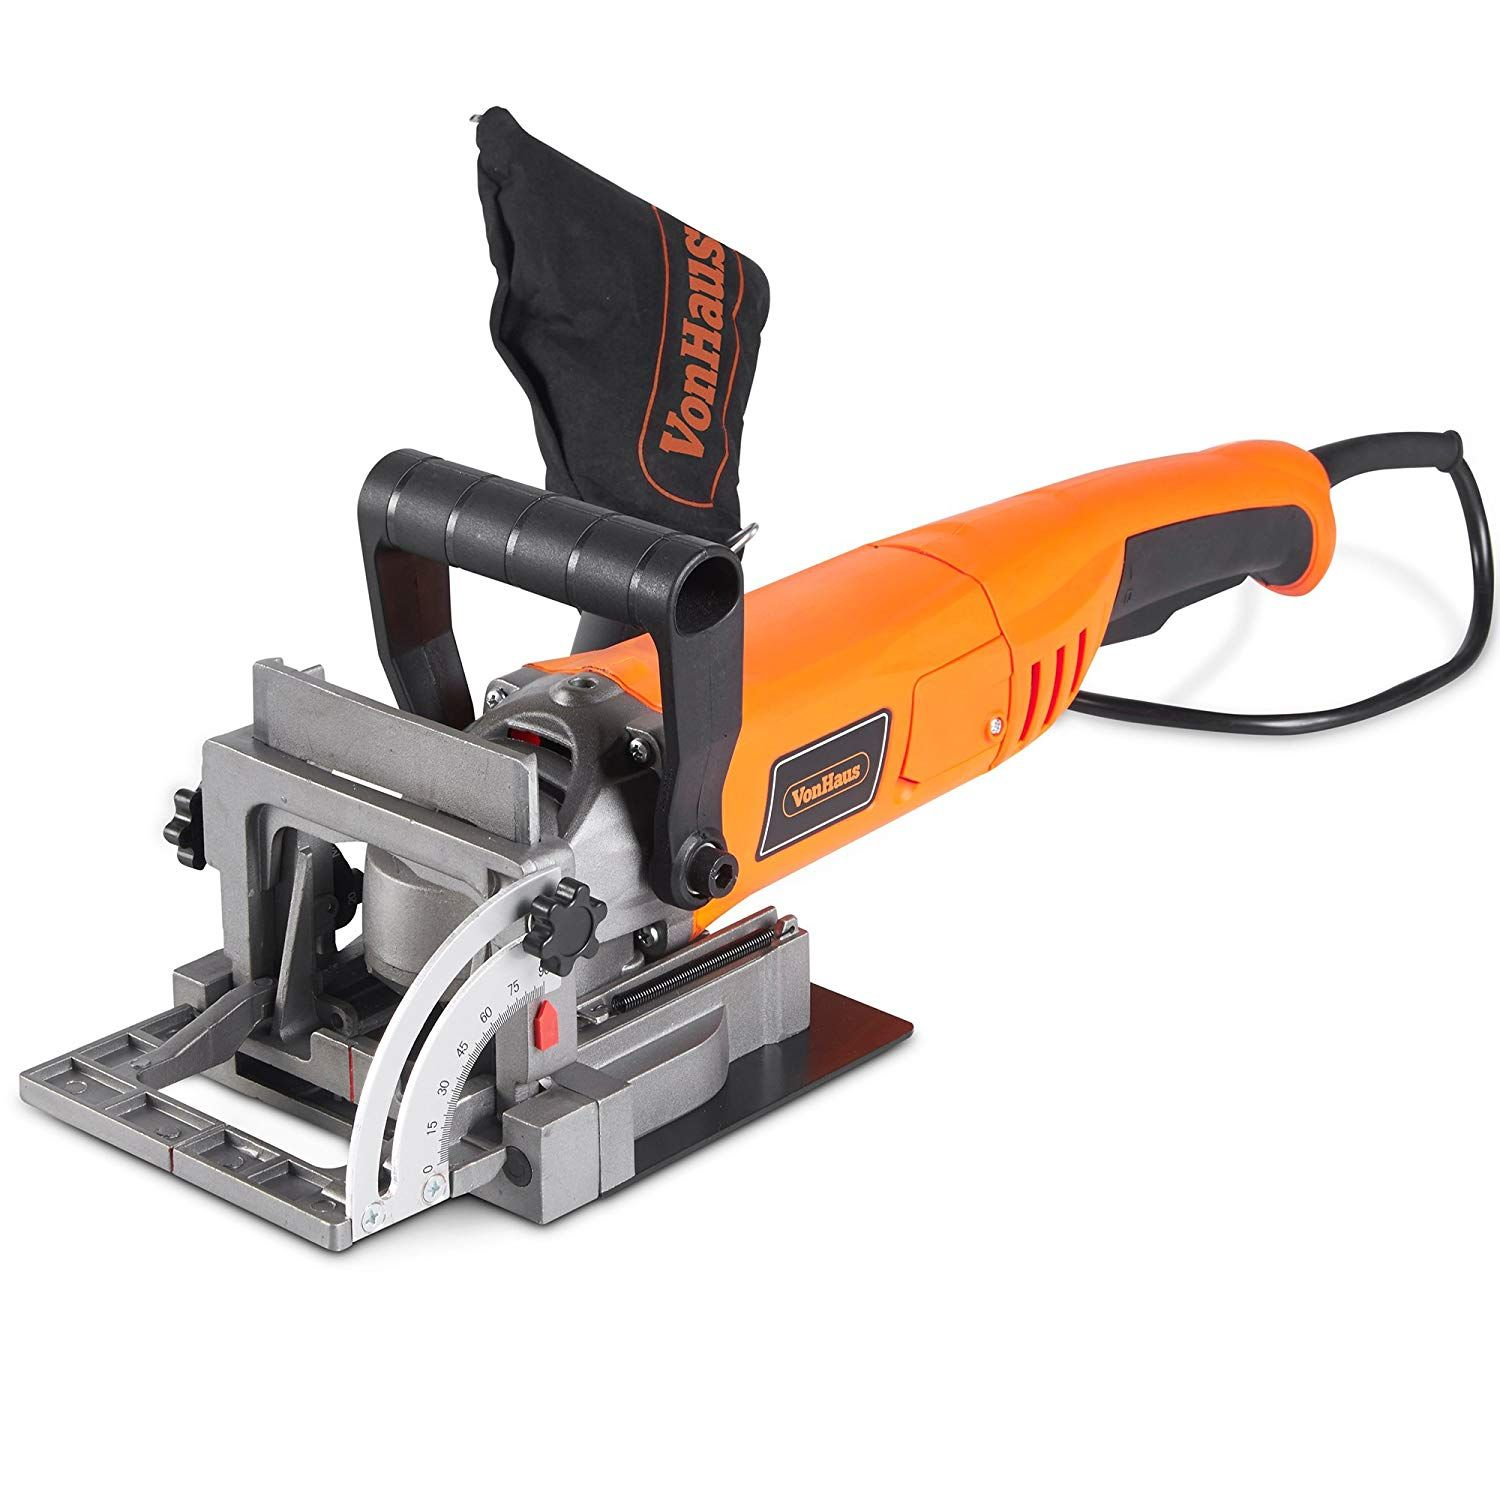 Vonhaus 8 5 Amp Wood Biscuit Plate Joiner With 4 Tungsten Carbide Tipped Blade Adjustable Angle And Dust Bag Suitable For All Wood T Wood Biscuits Biscuit Joiner Types Of Wood